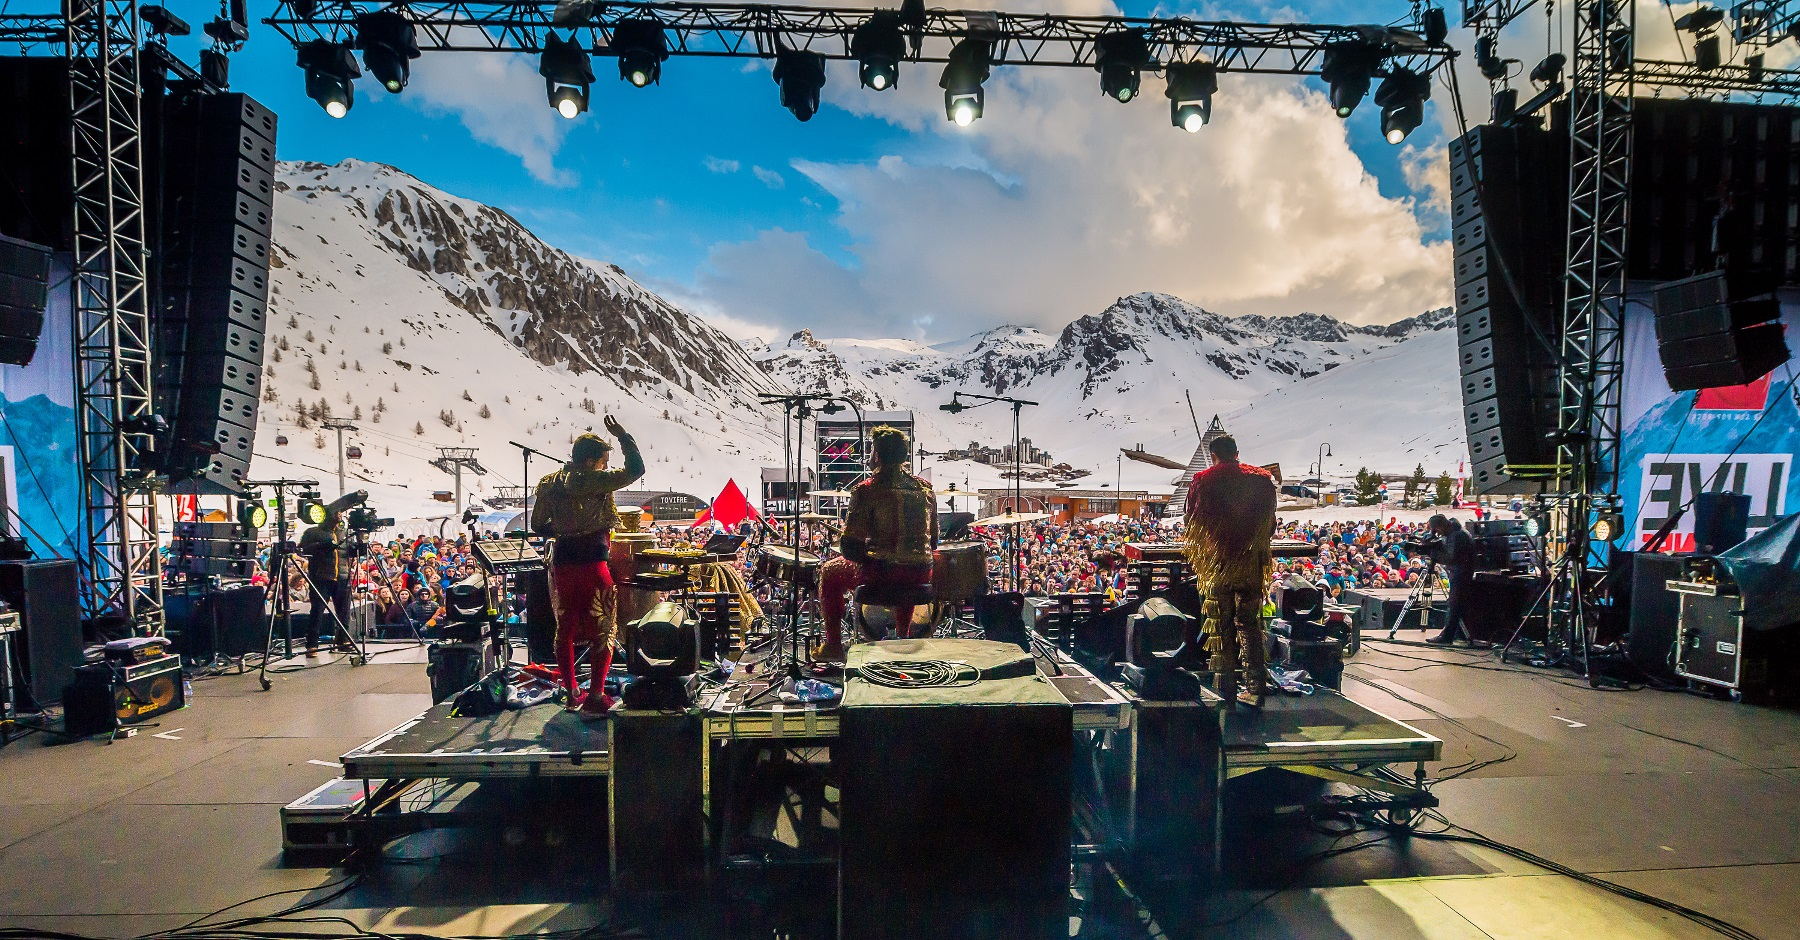 image__header__alpes-6-stations-pour-faire-la-fete__live-in-tignes-and6878-modifier-andyparantcom-jpg